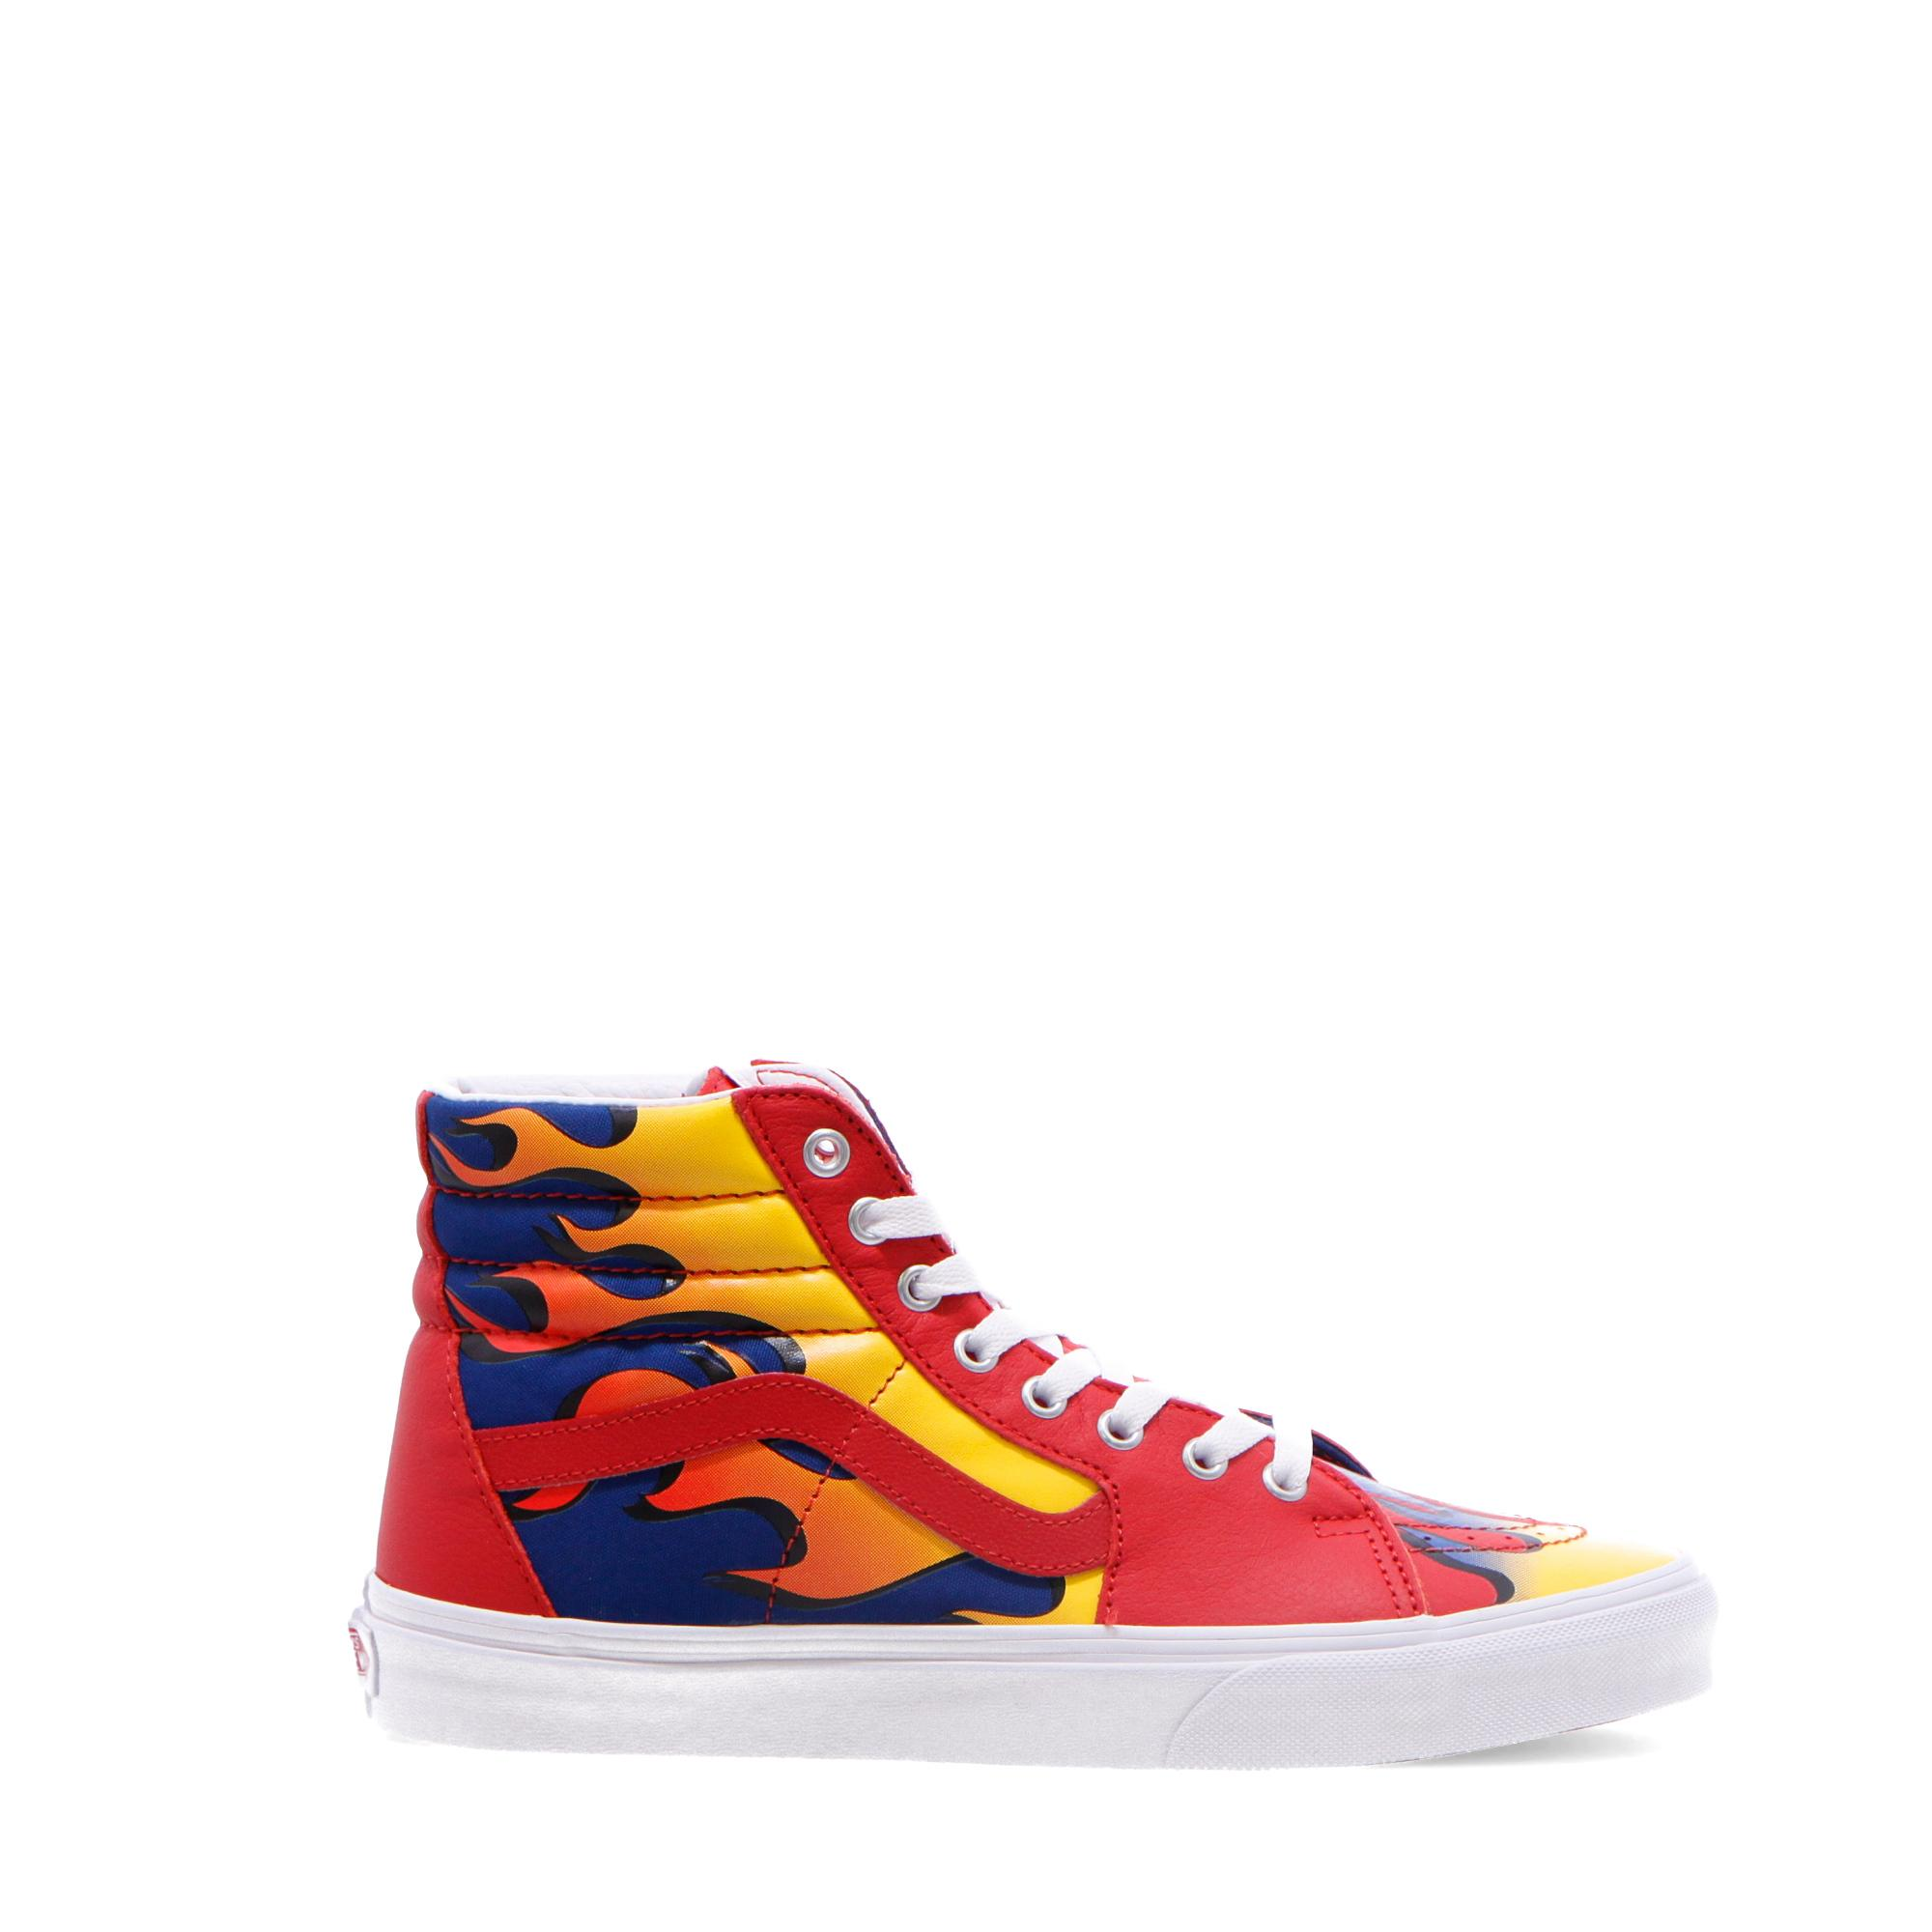 Vans Ua Sk8-hi (racer) red true blue